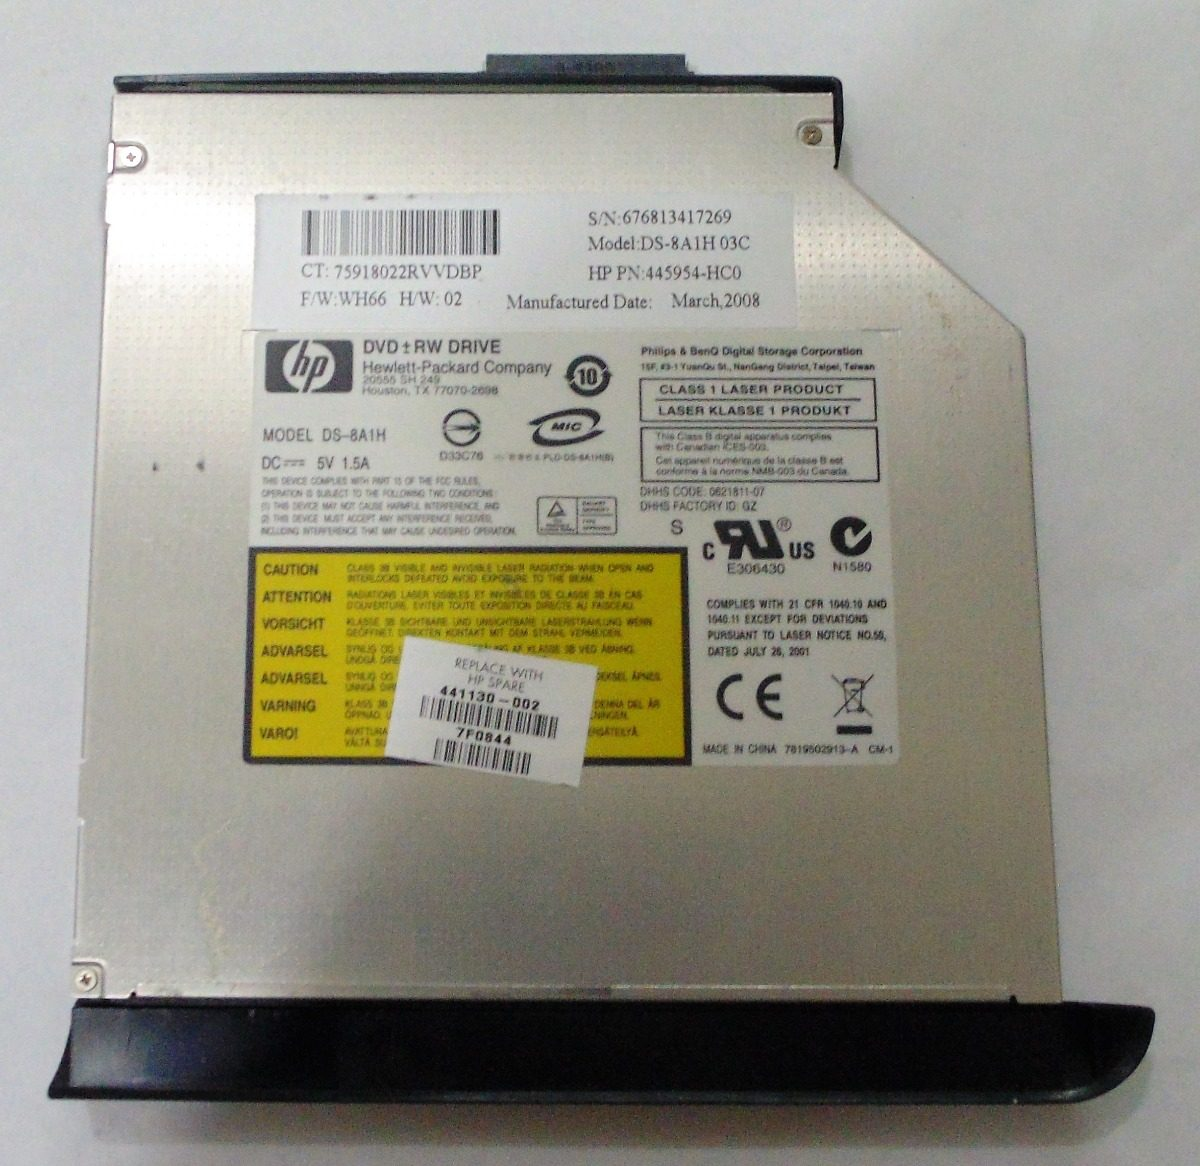 Plds dvd -rw dh-16a6s ata device driver download.